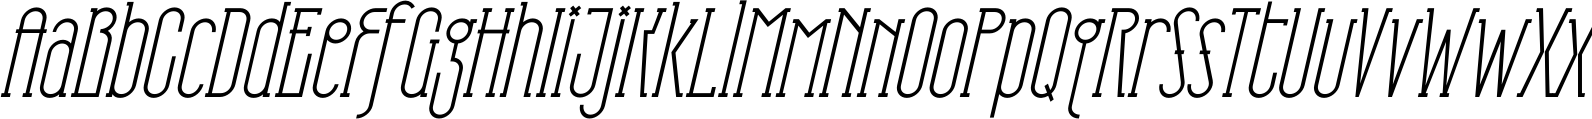 TS Horse Face Regular Oblique Font